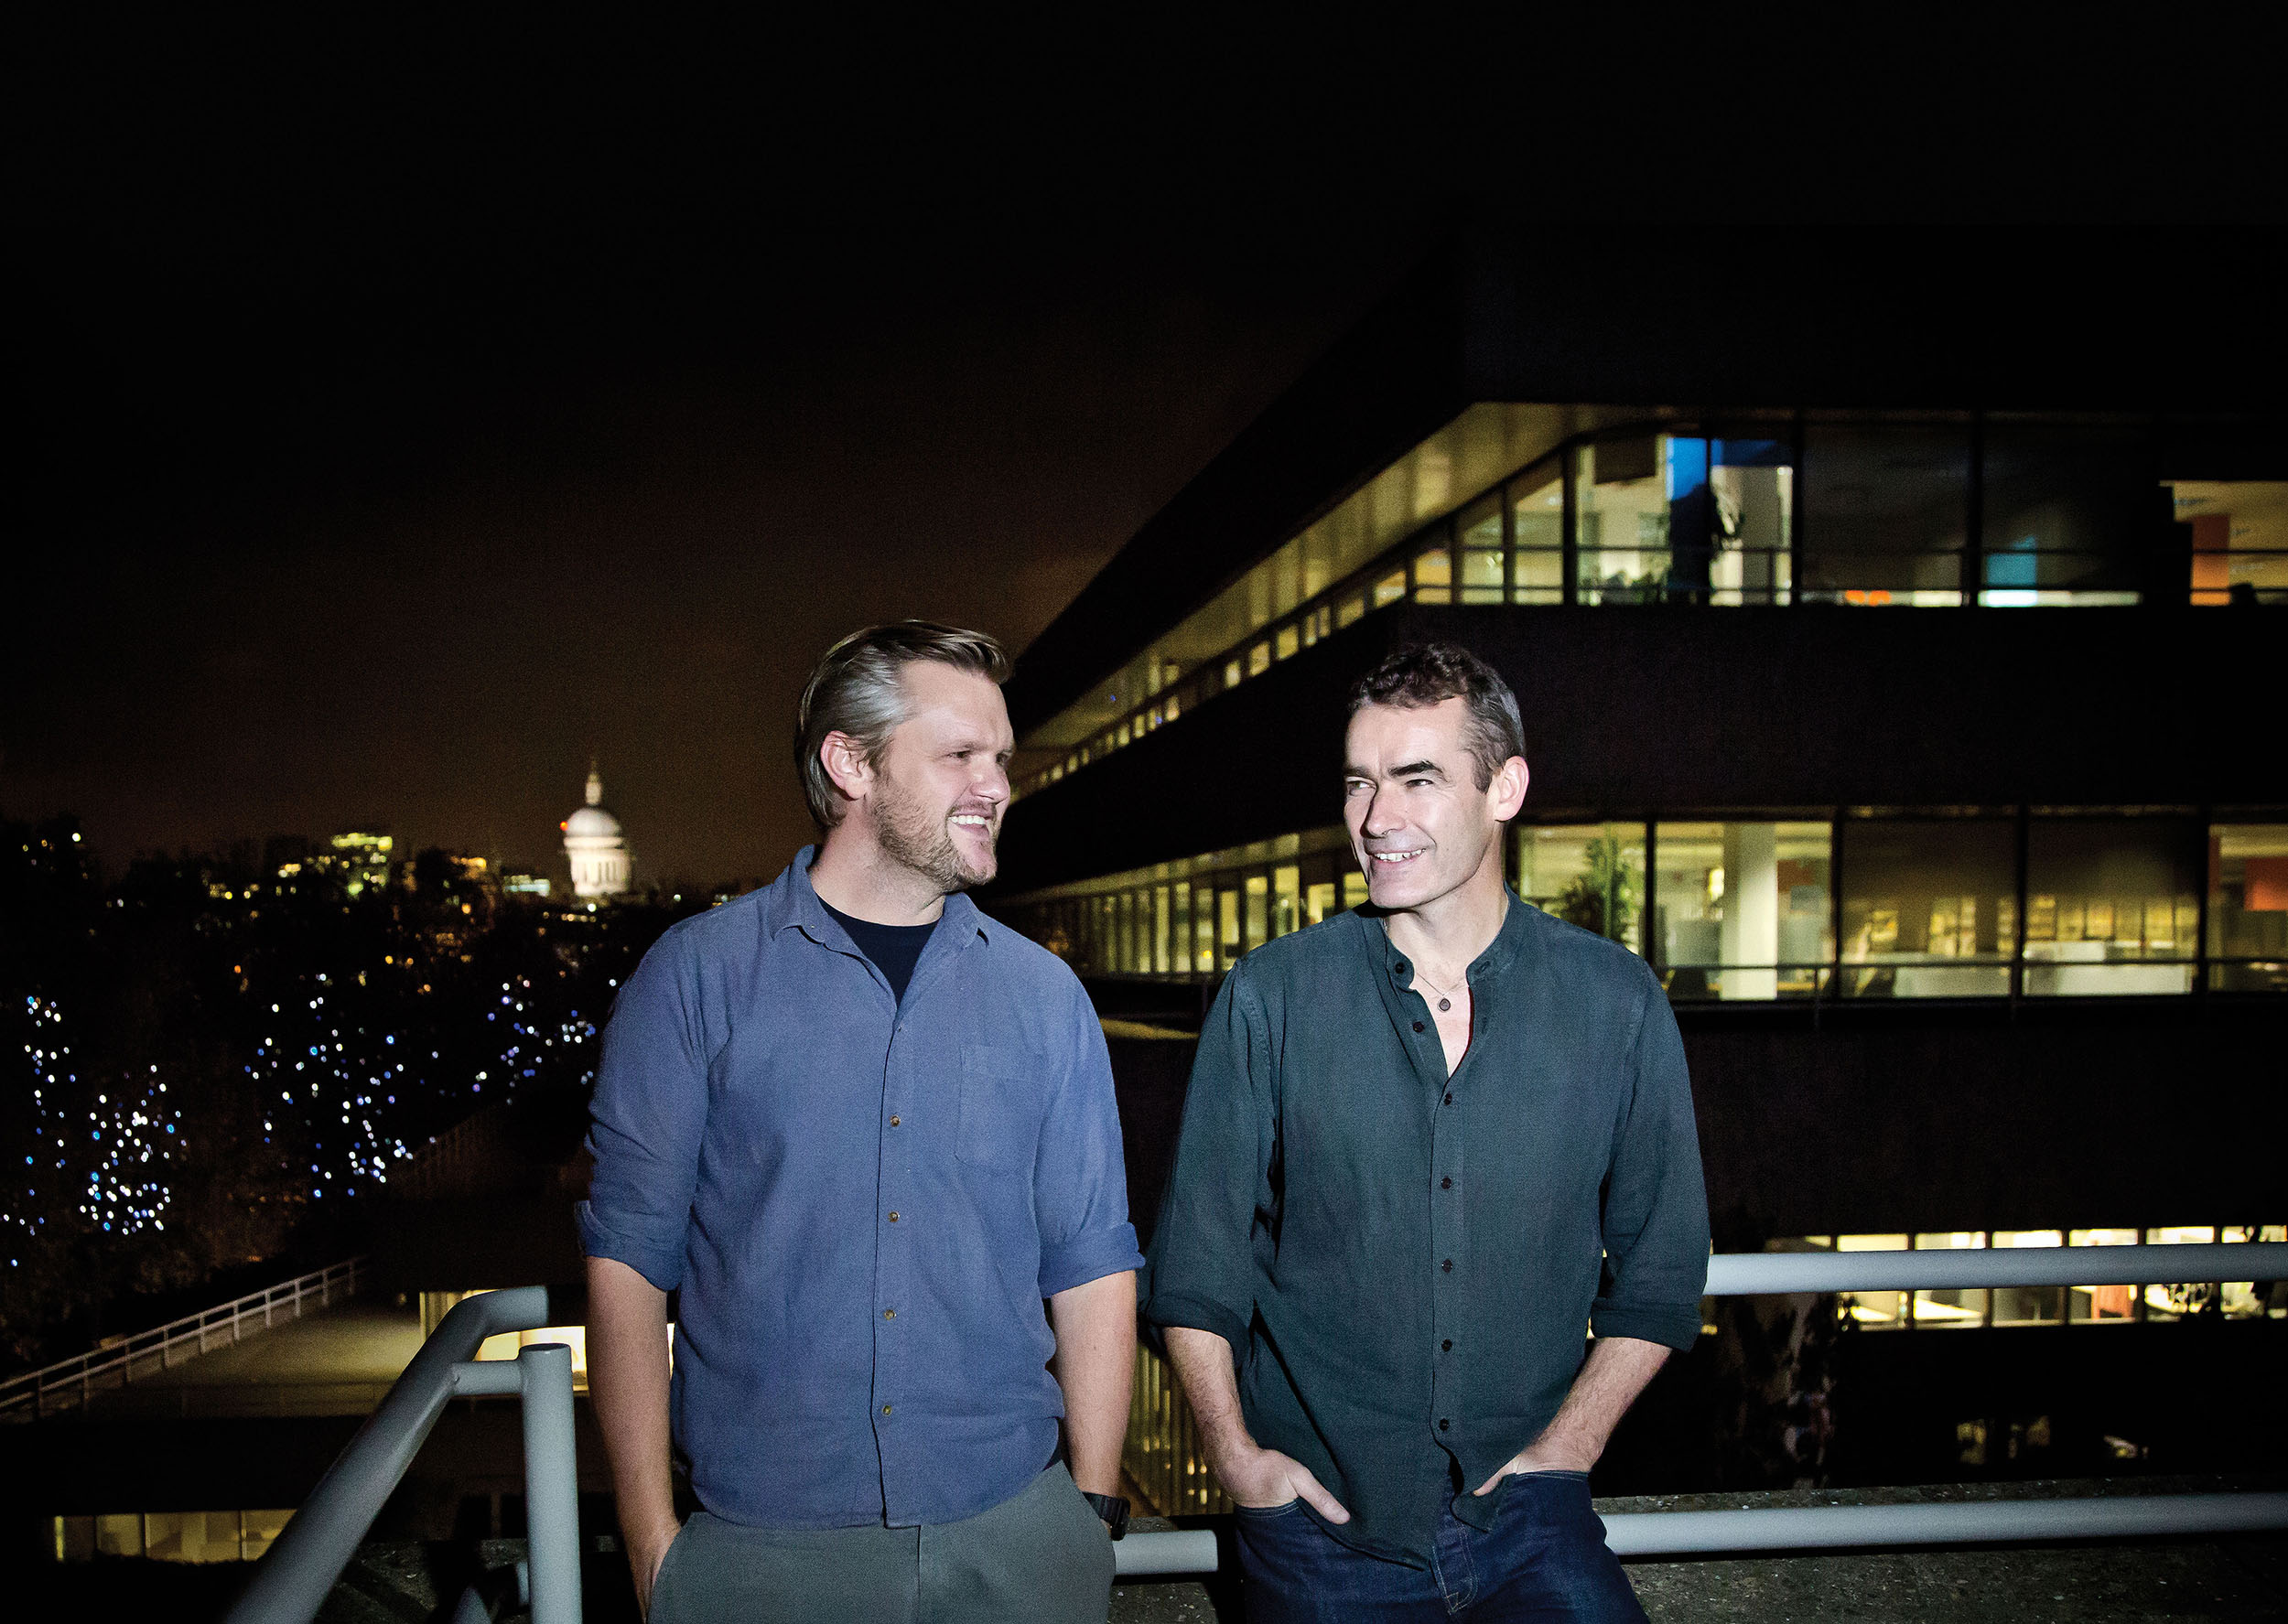 Ben Roberts  Director of the BFI Film Fund  with   Rufus Norris  Artistic Director of the National Theatre